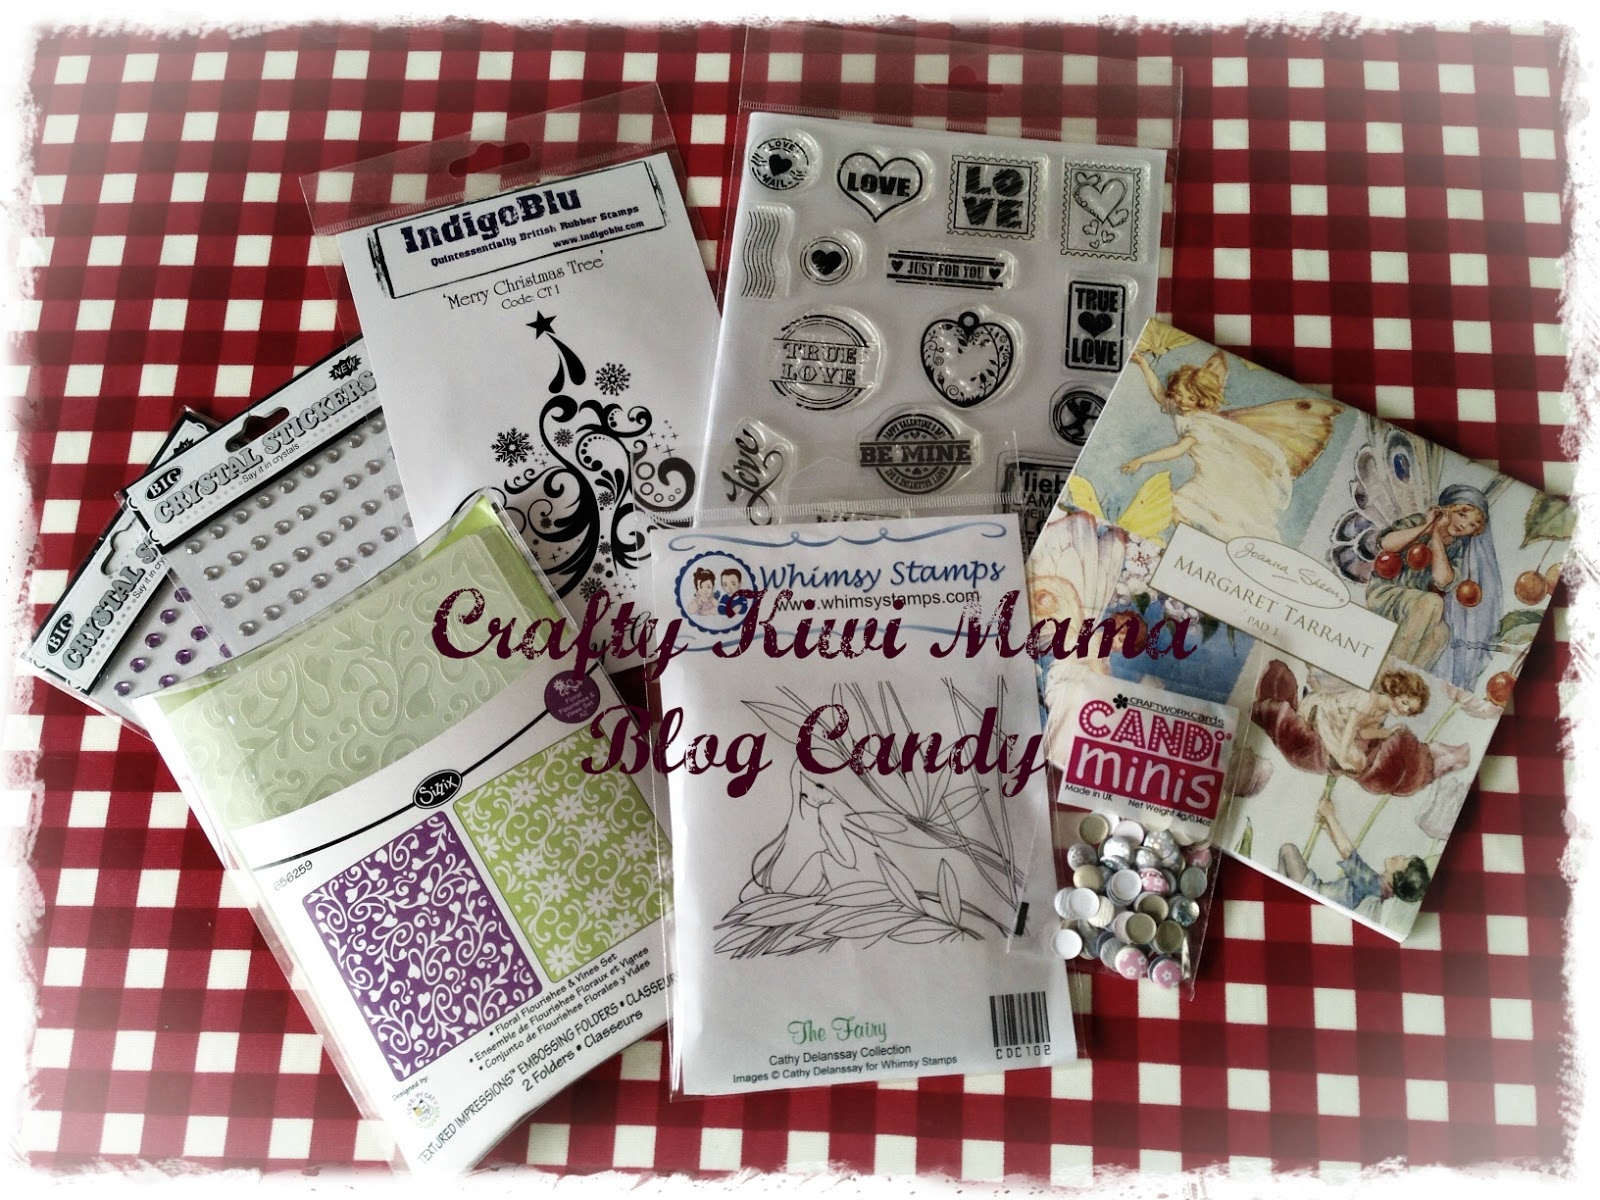 Crafty Kiwi Mama's Blogoversary Blogcandy